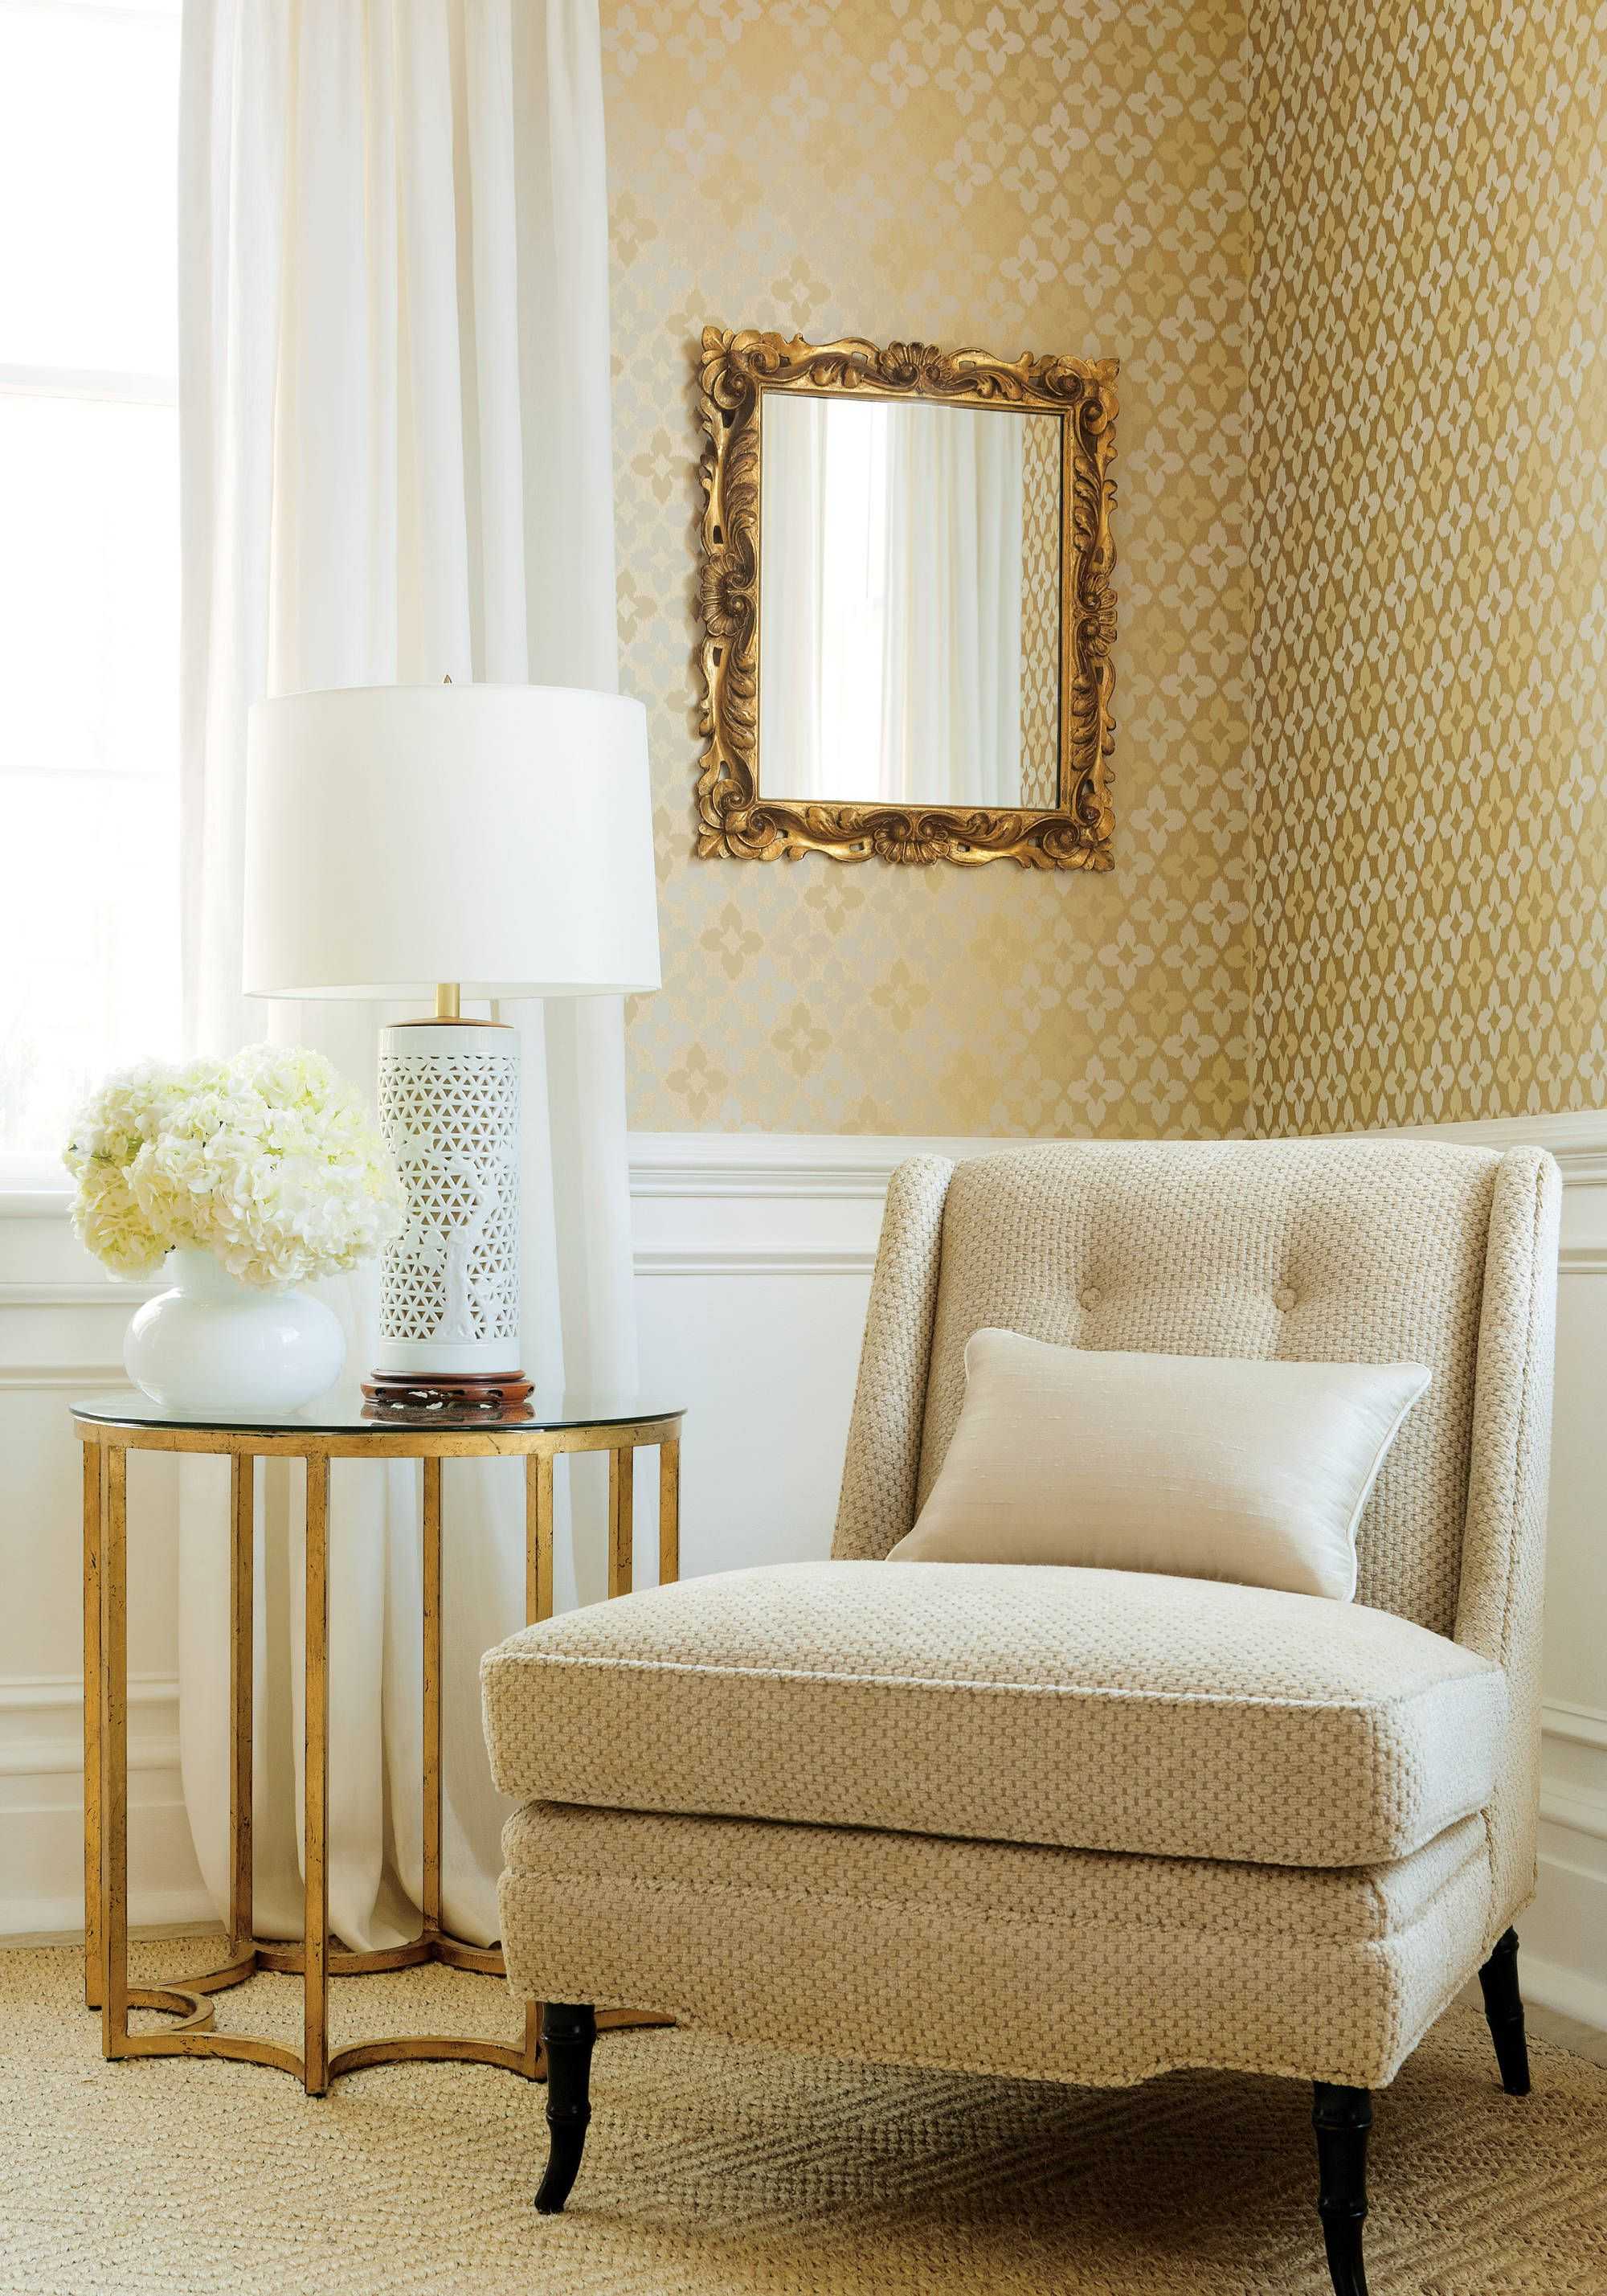 Bedford Chair from Thibaut Fine Furniture in Lugano woven fabric in